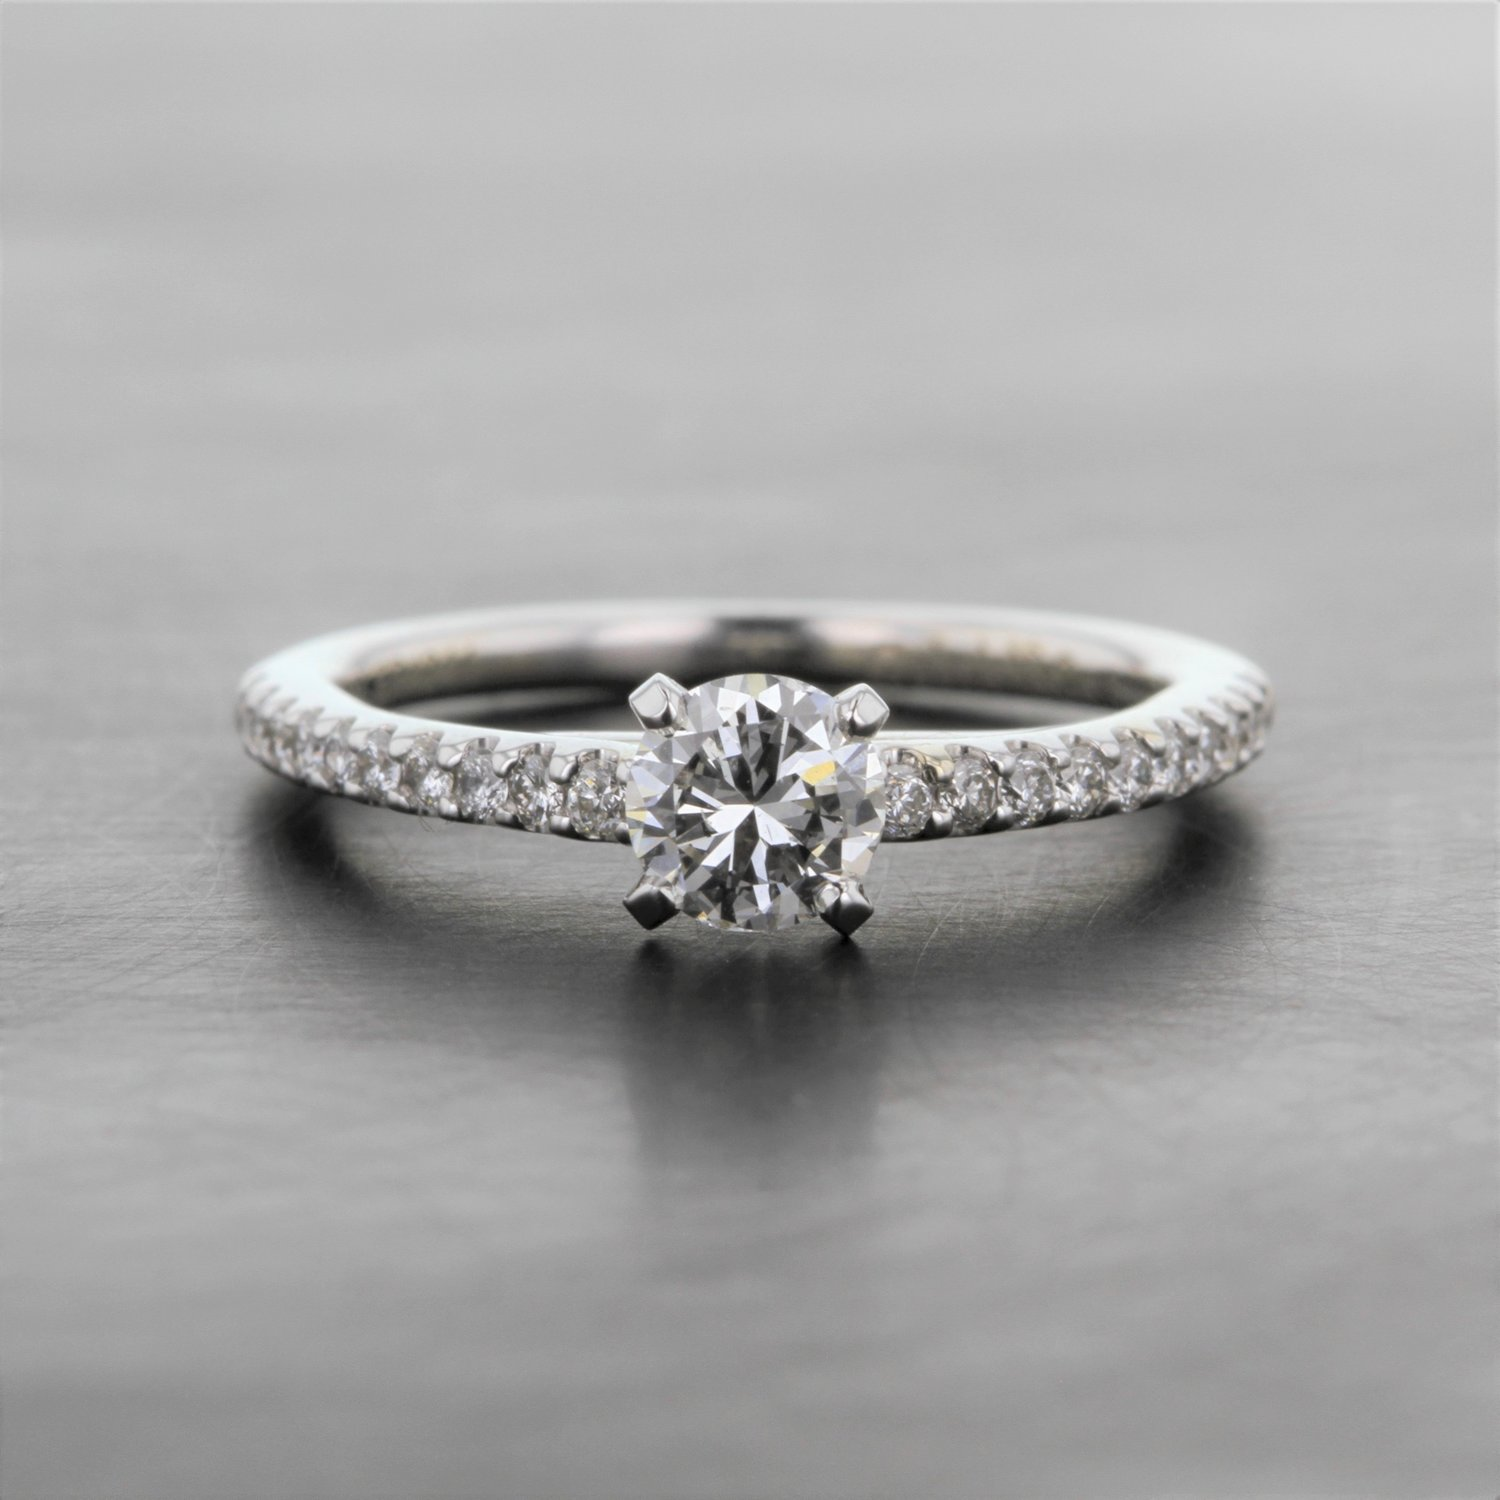 Round Solitaire Engagement Ring With Diamond Band Kizer Cummings Jewelers